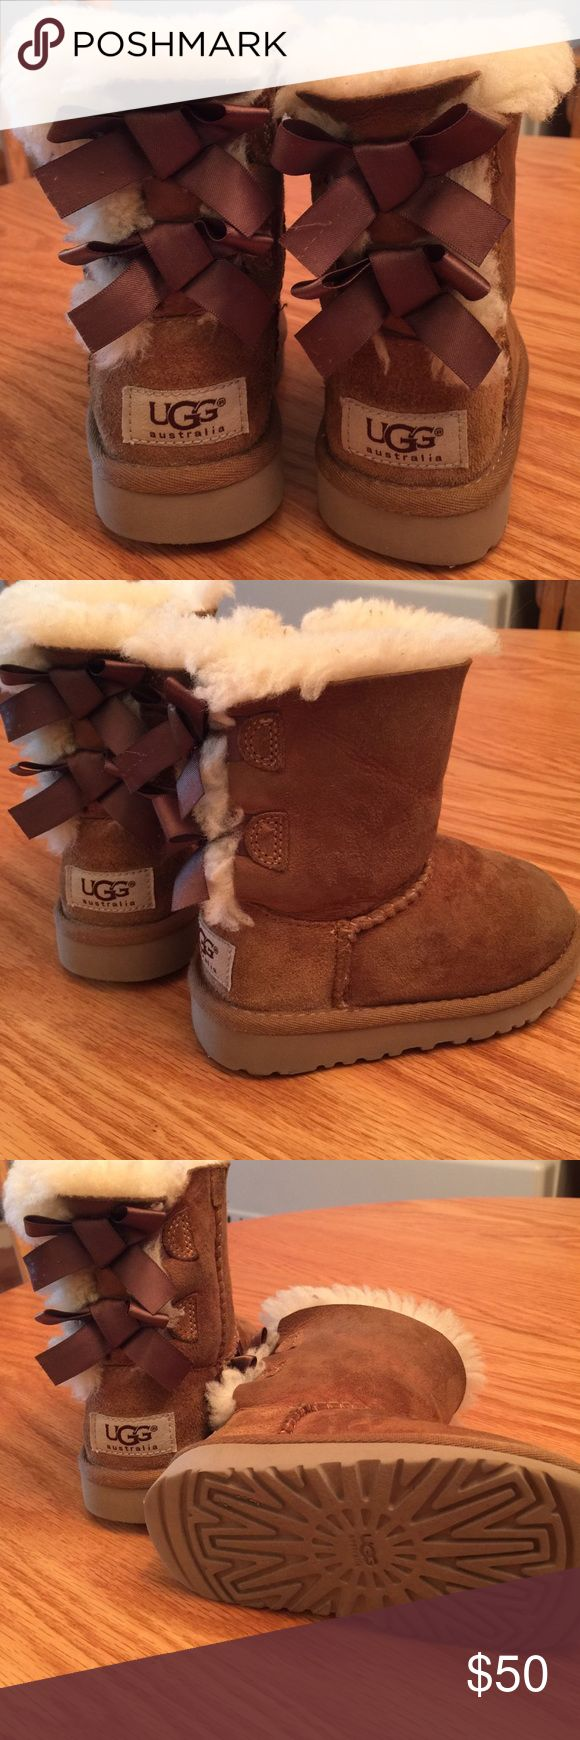 Little girls Toddler size 8 ugg boots Brown boots with faux fur and bailey bows on back UGG Shoes Rain & Snow Boots